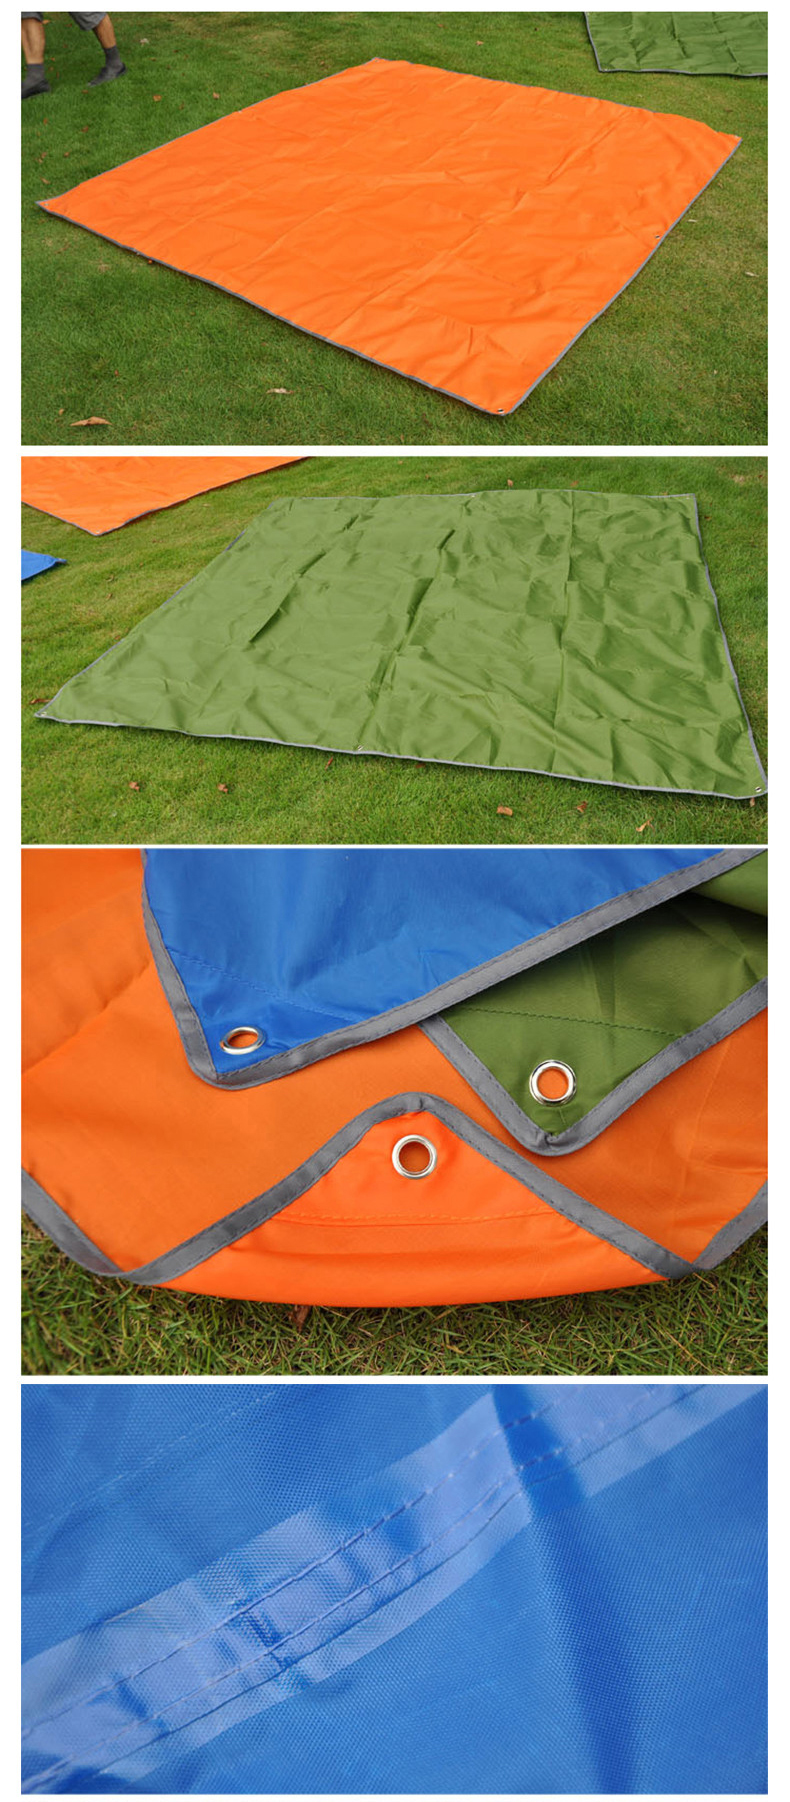 Naturehike Outdoor Camping Fly Sheet, rug, naturehike malaysia, rug beach, tent rug, tent cover, sunshine shelter use, shelter cover roof, camping outdoor